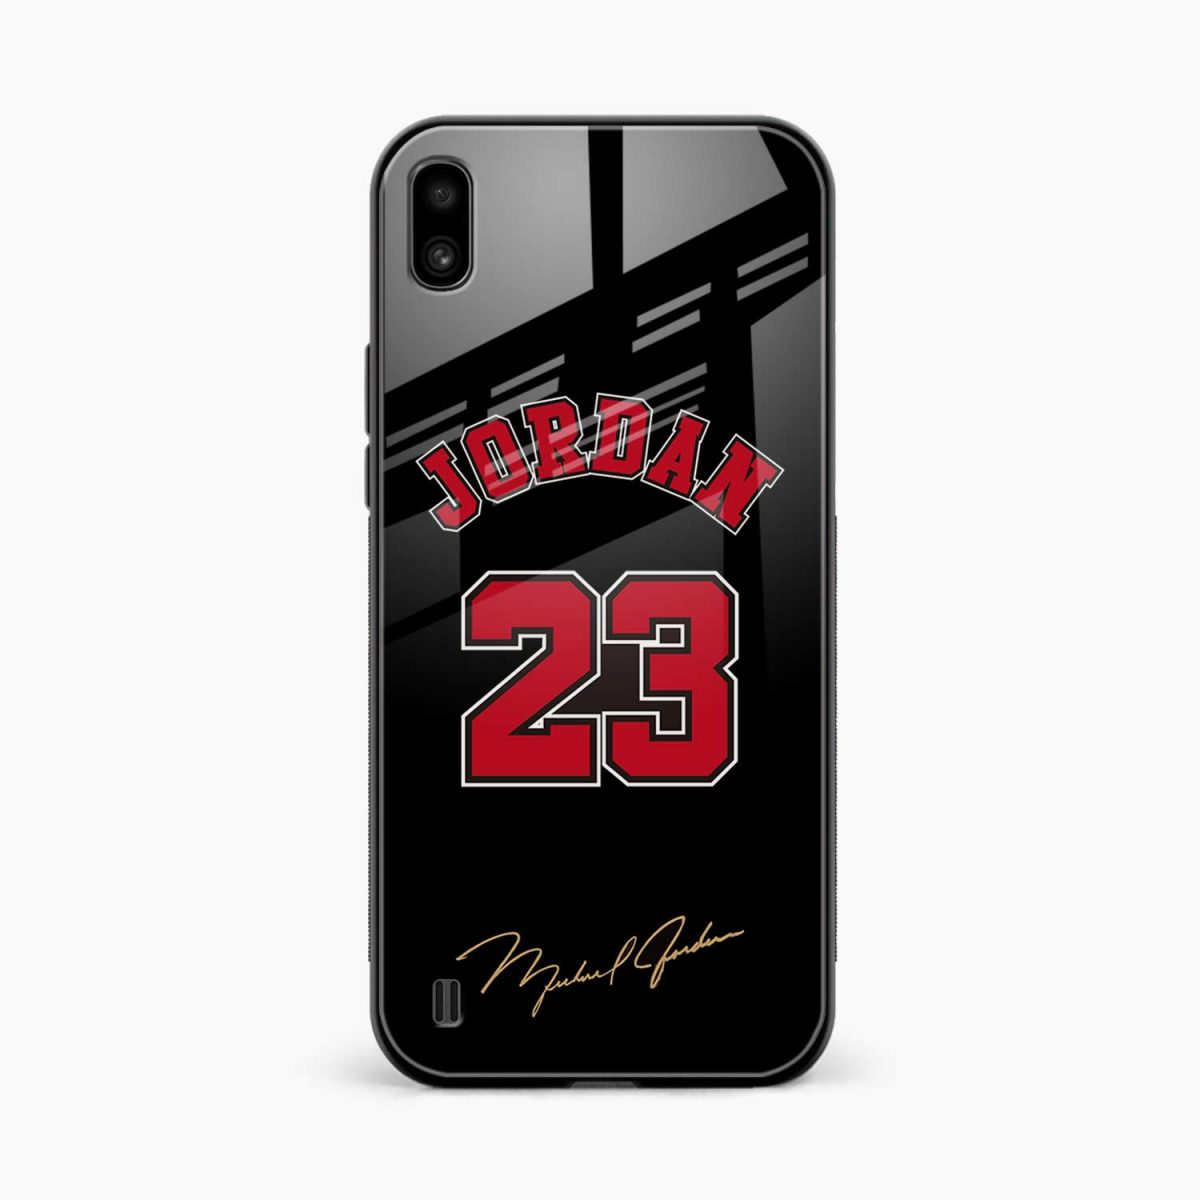 jordan front view samsung galaxy a10 back cover